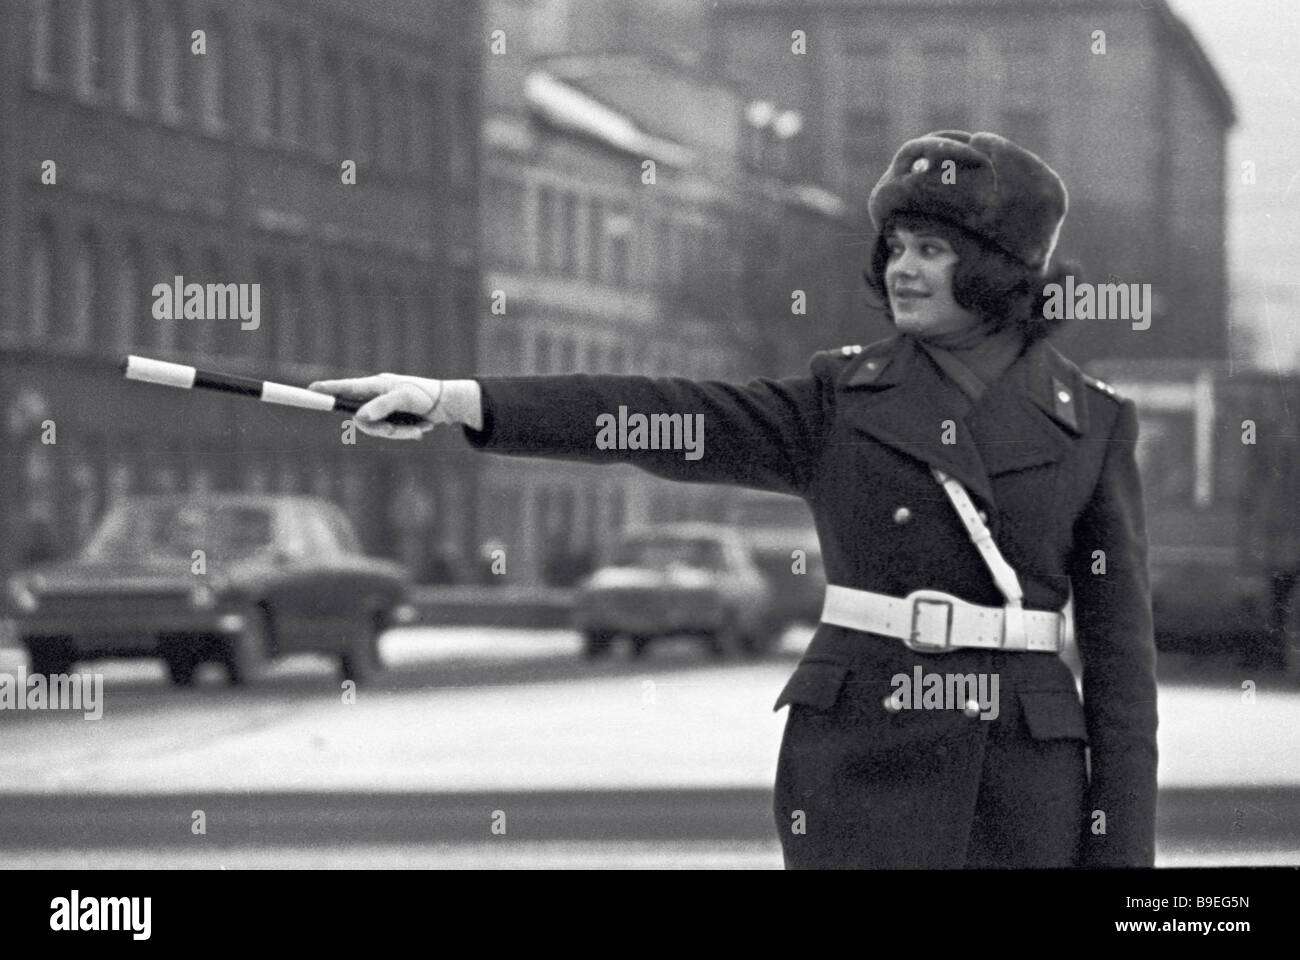 A traffic controller directing traffic with a baton - Stock Image